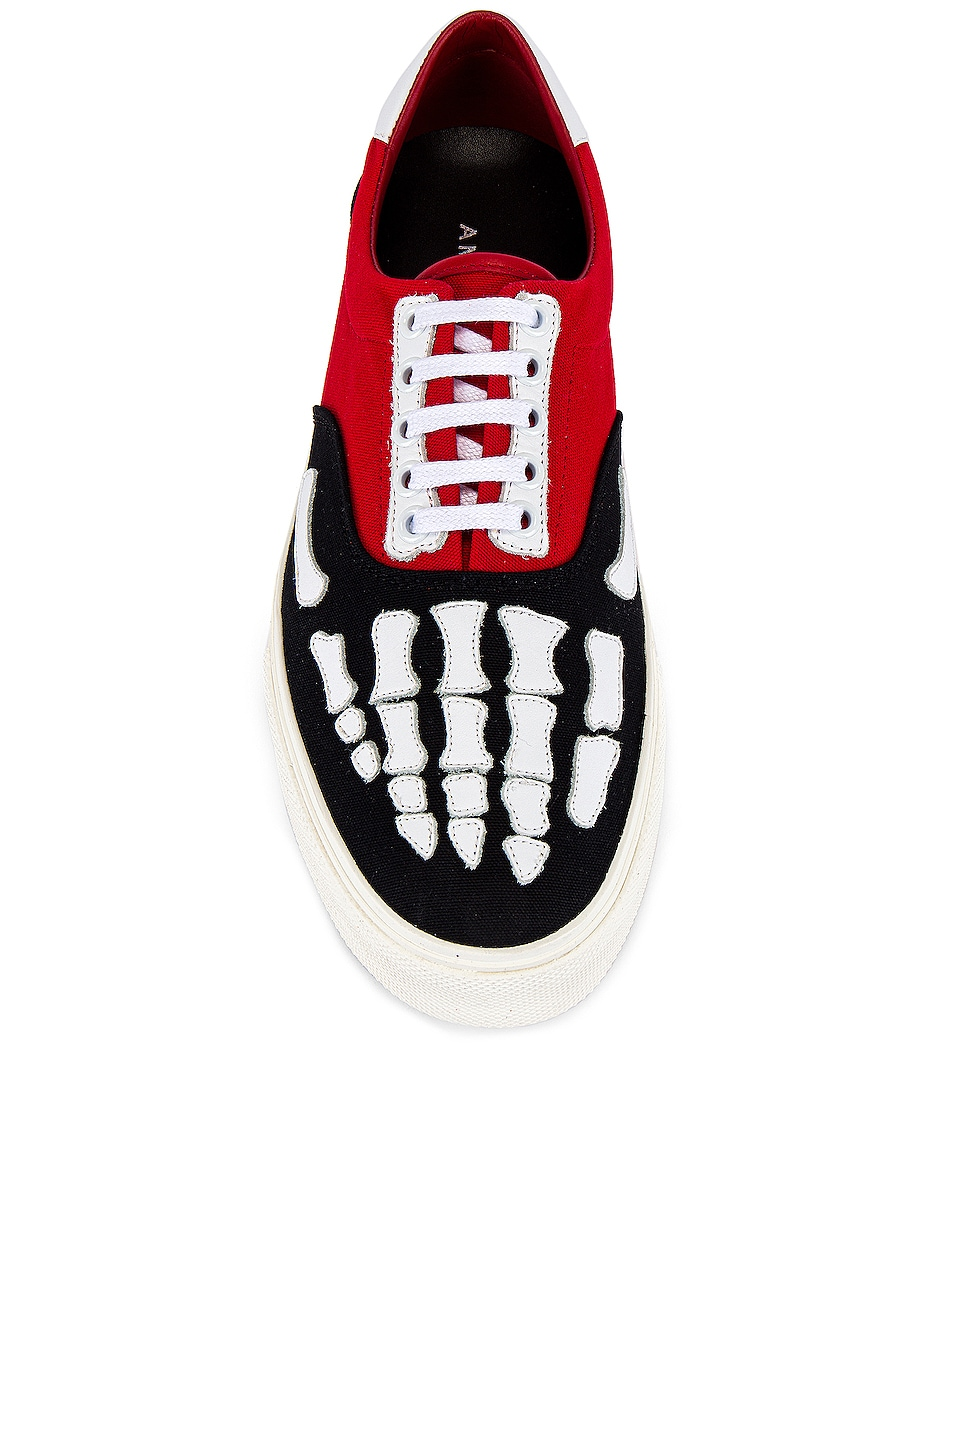 Image 4 of Amiri Skel Toe Lace Up Sneaker in Black & Red & White